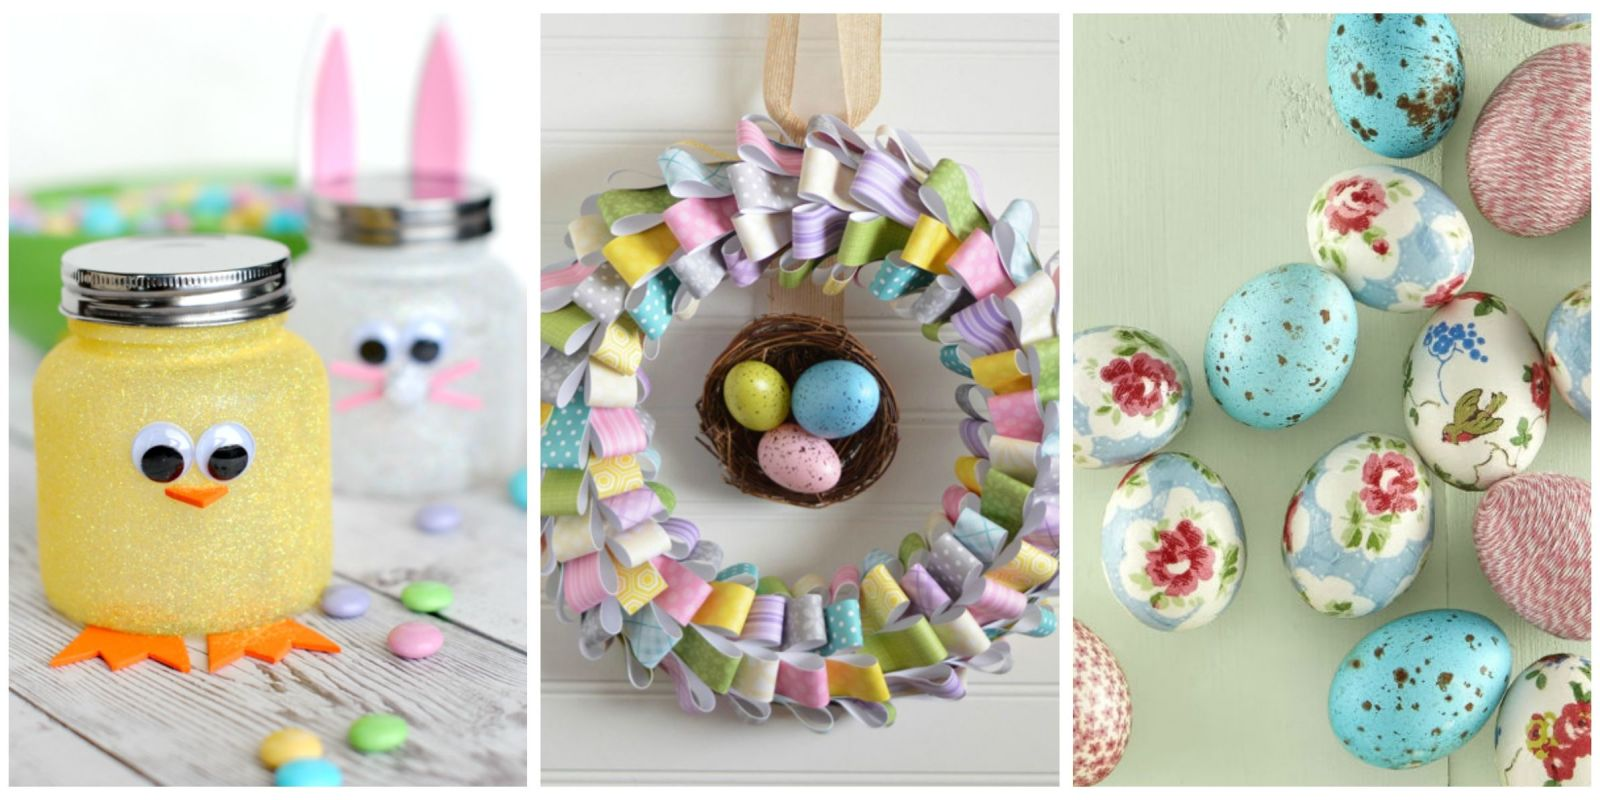 60 Easy Easter Crafts Ideas For Easter DIY Decorations & Gifts